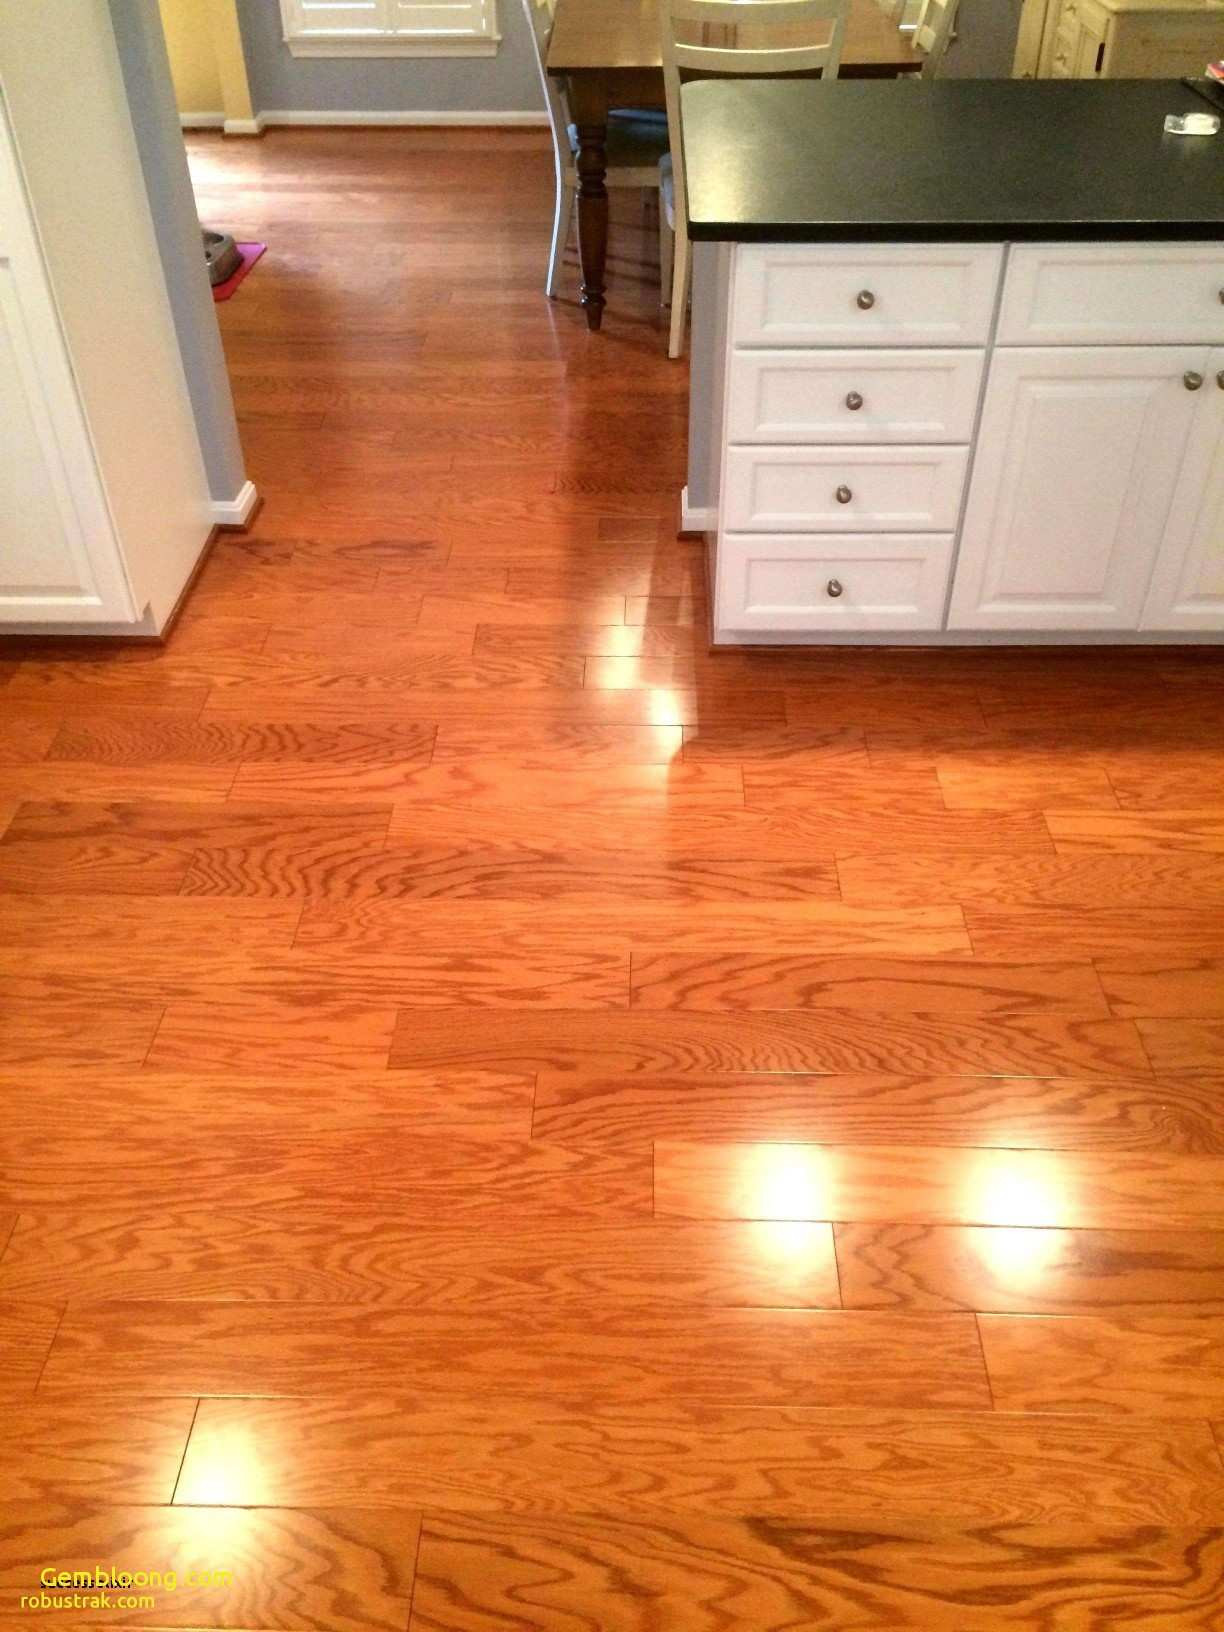 clearance solid hardwood flooring of wood for floors facesinnature with hardwood floors in the kitchen fresh where to buy hardwood flooring inspirational 0d grace place barnegat